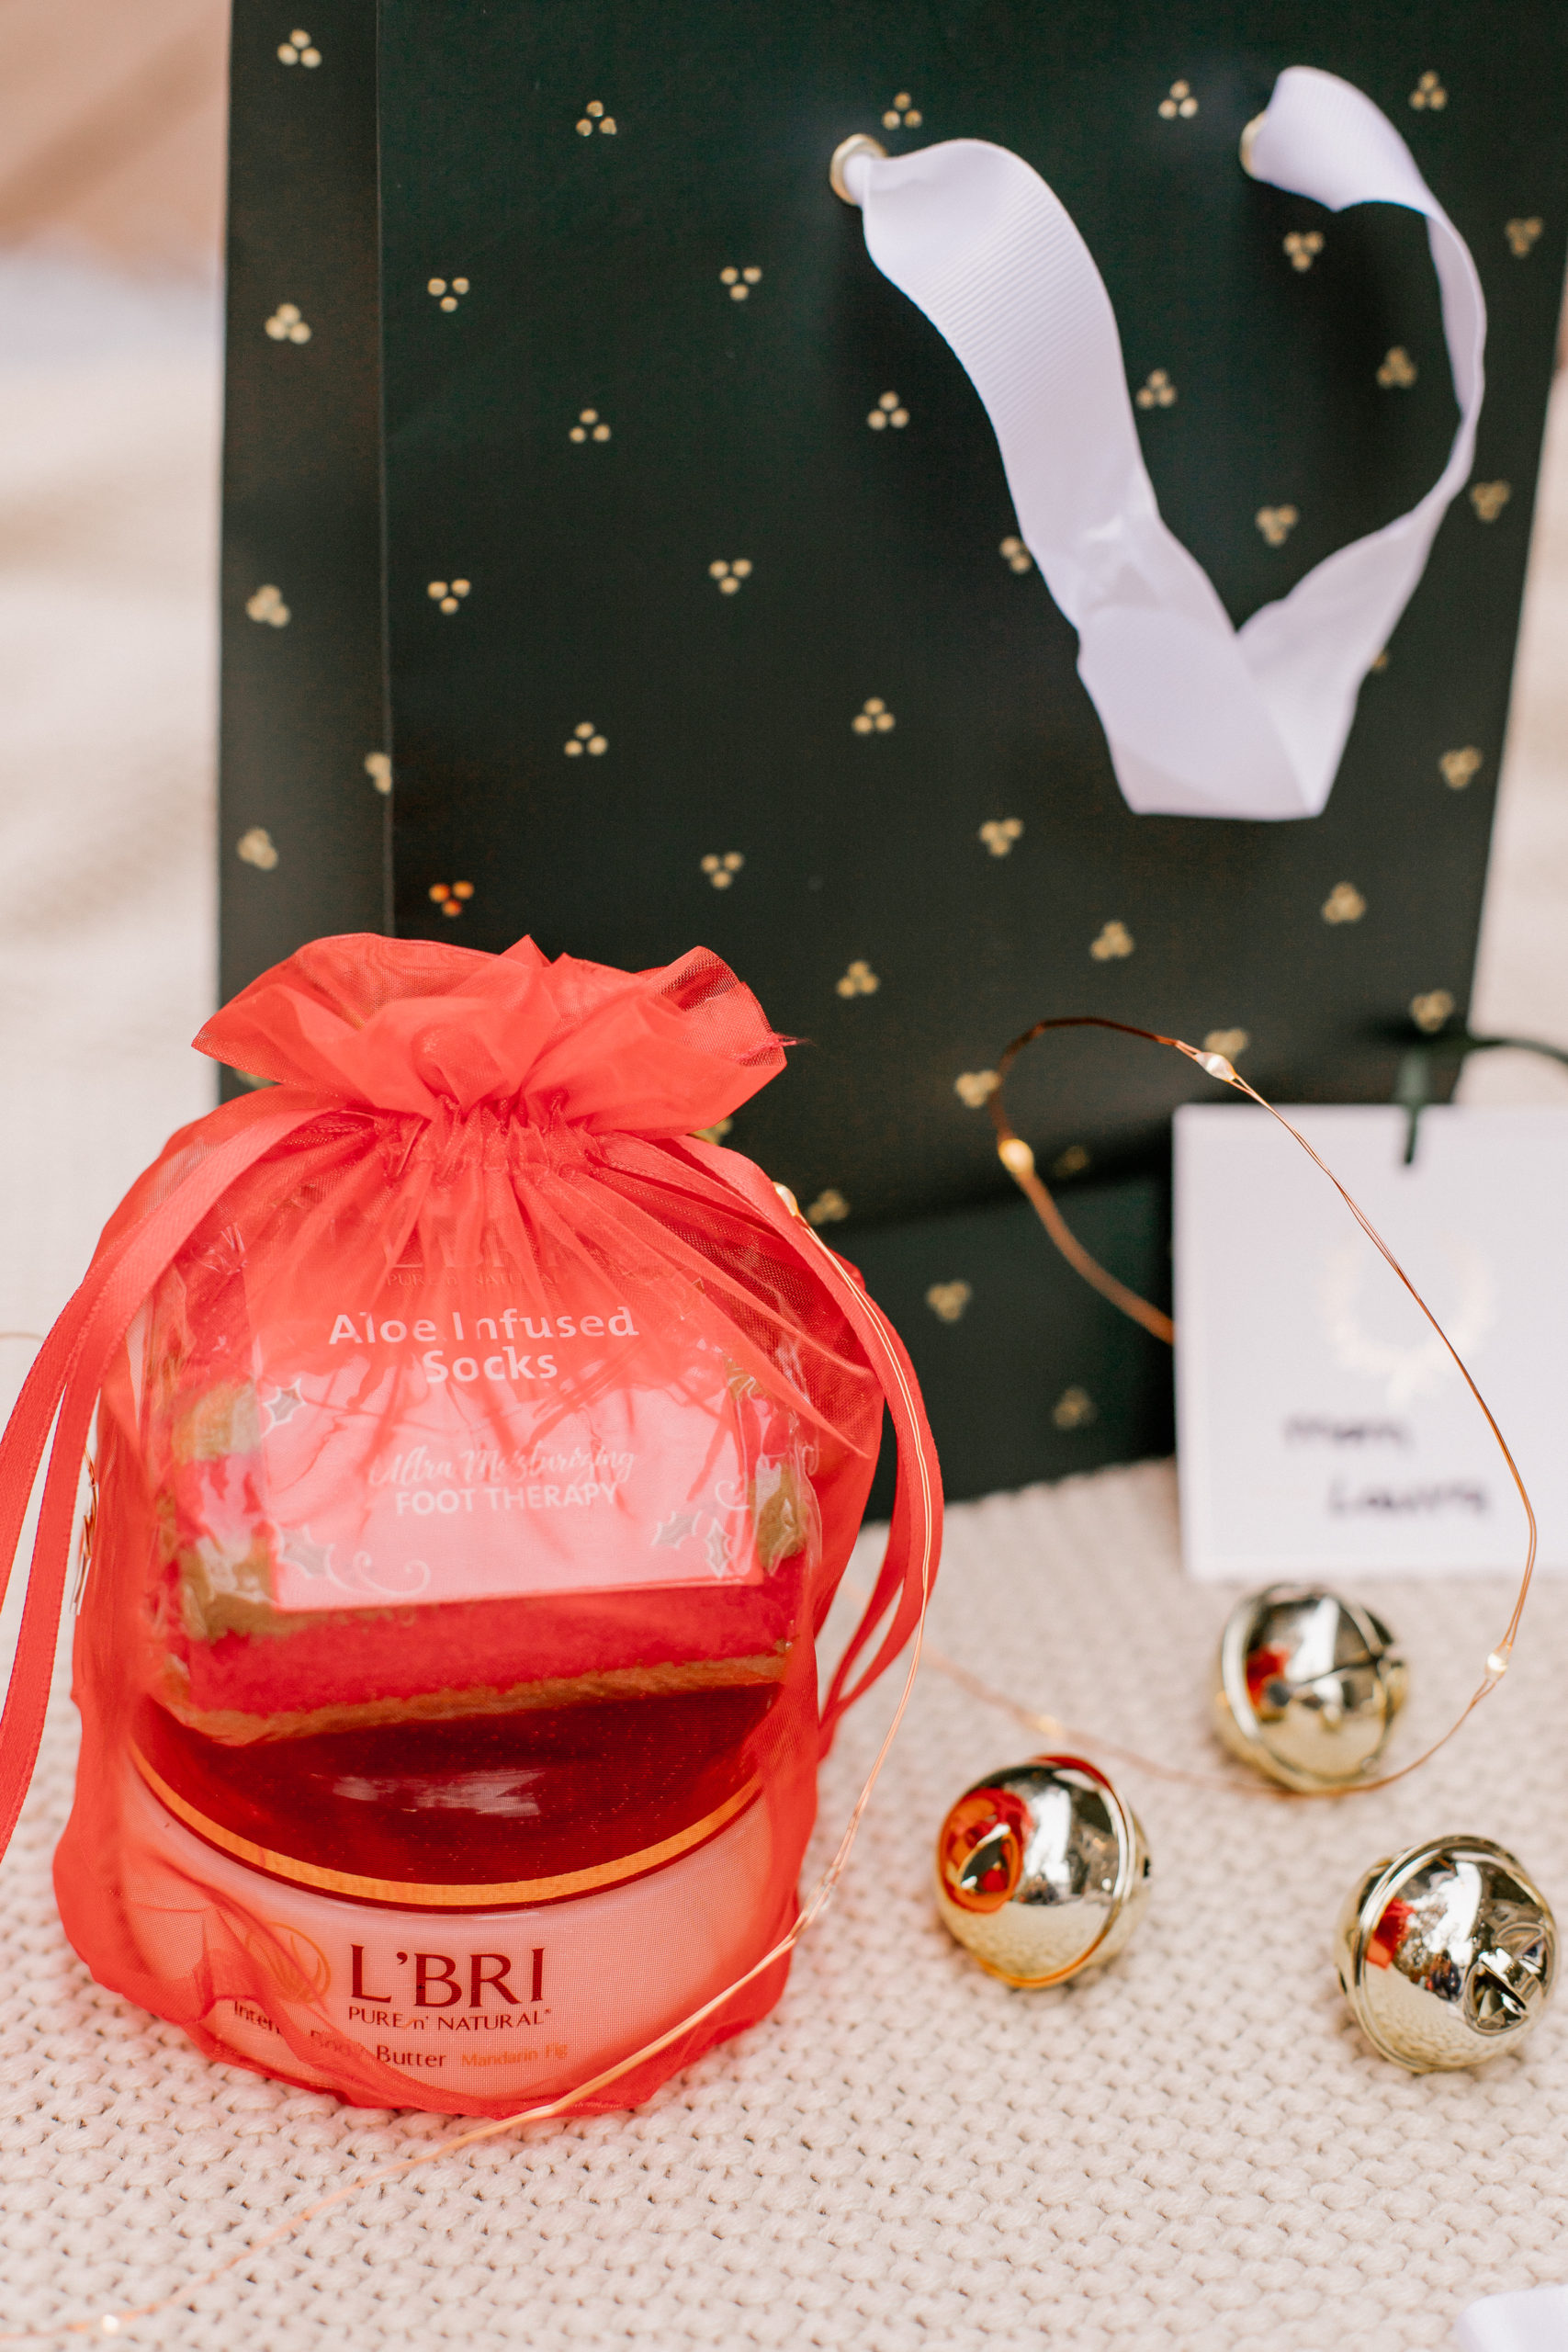 Beauty Gift Ideas | 2019 Gift Guide | Louella Reese